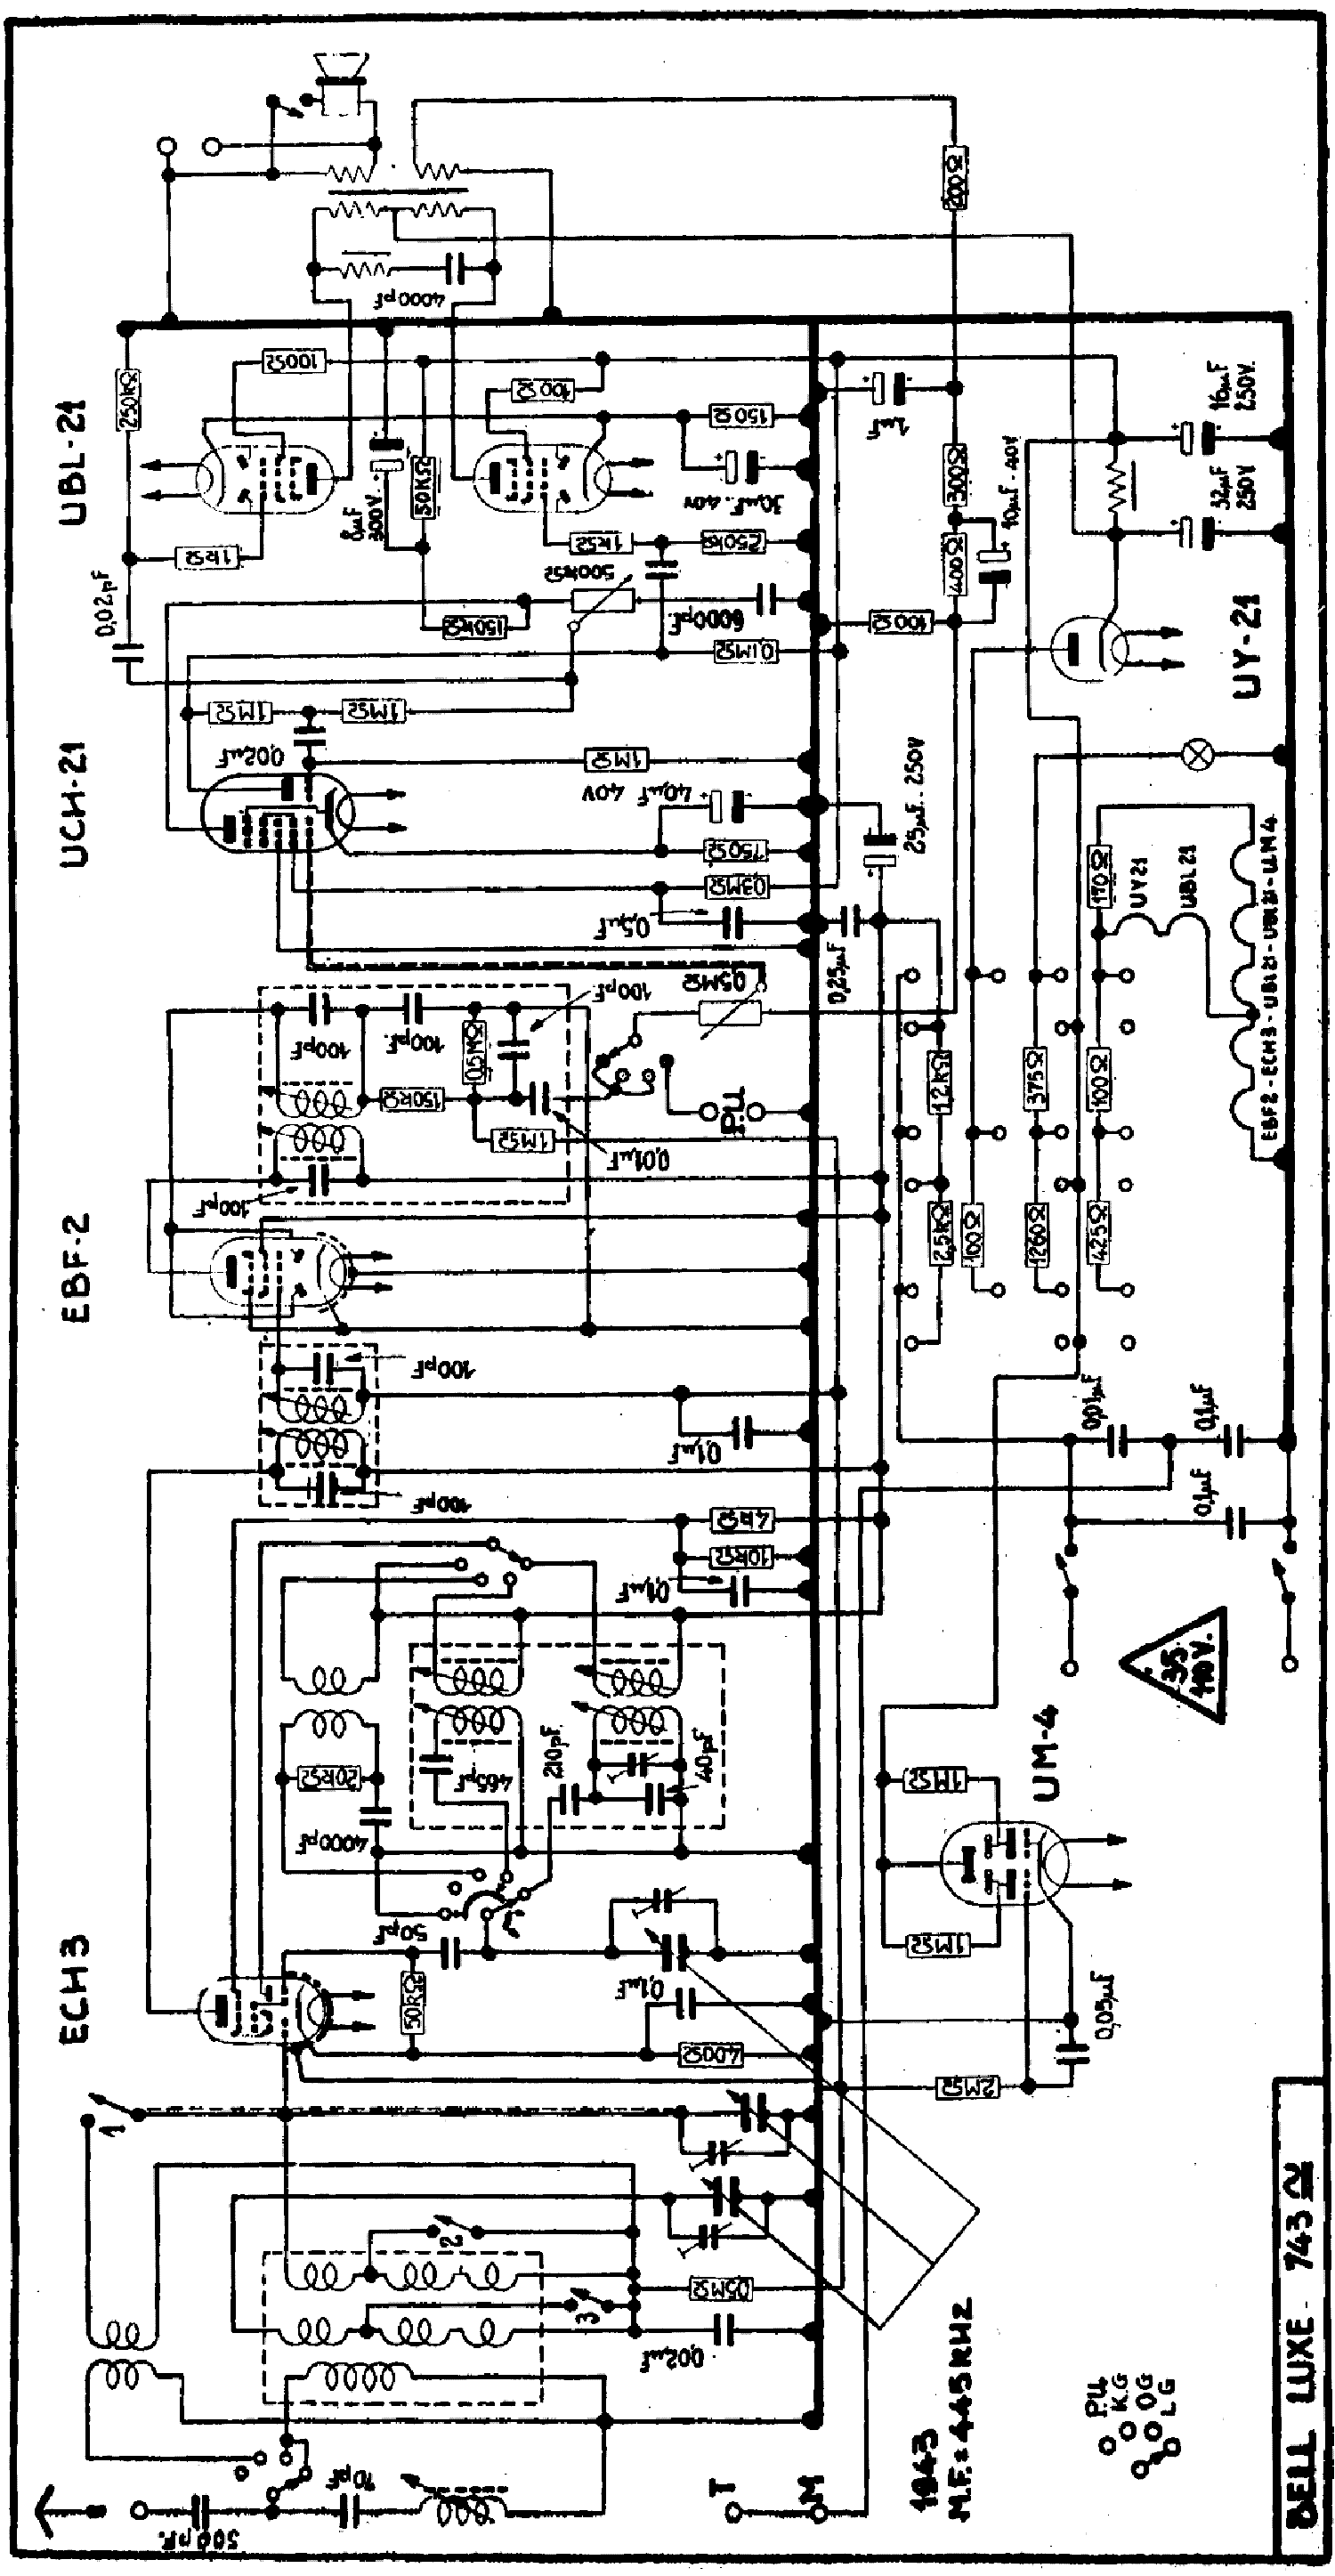 RADIOBELL 743U AC-DC RADIO 1943 SCH Service Manual